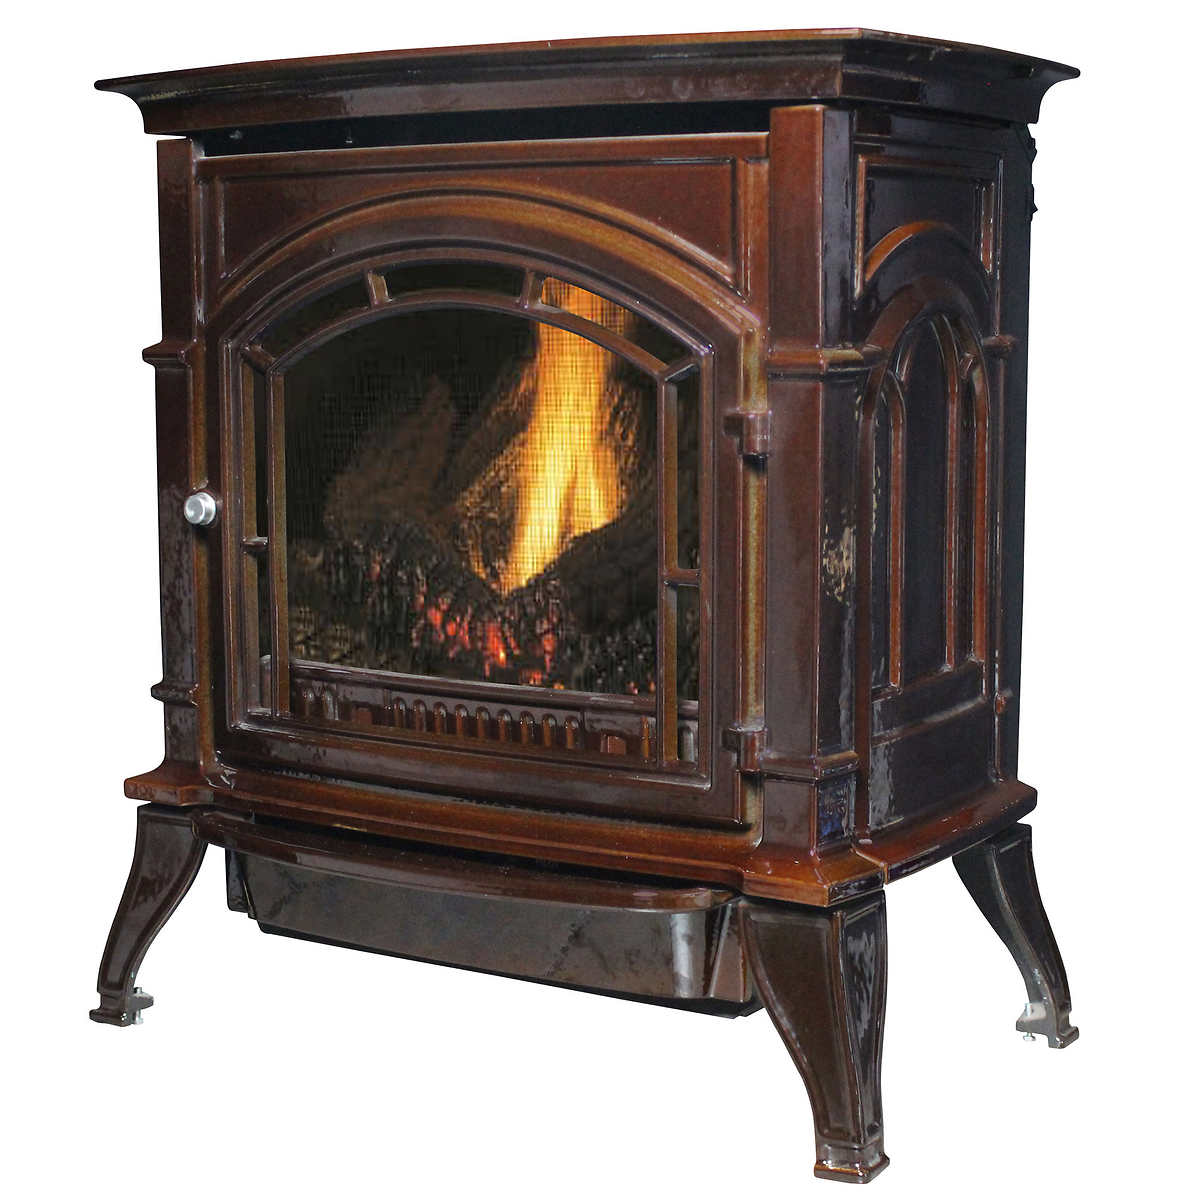 Fireplaces stoves accessories costco us stove ashley porcelain gas stove eventelaan Choice Image